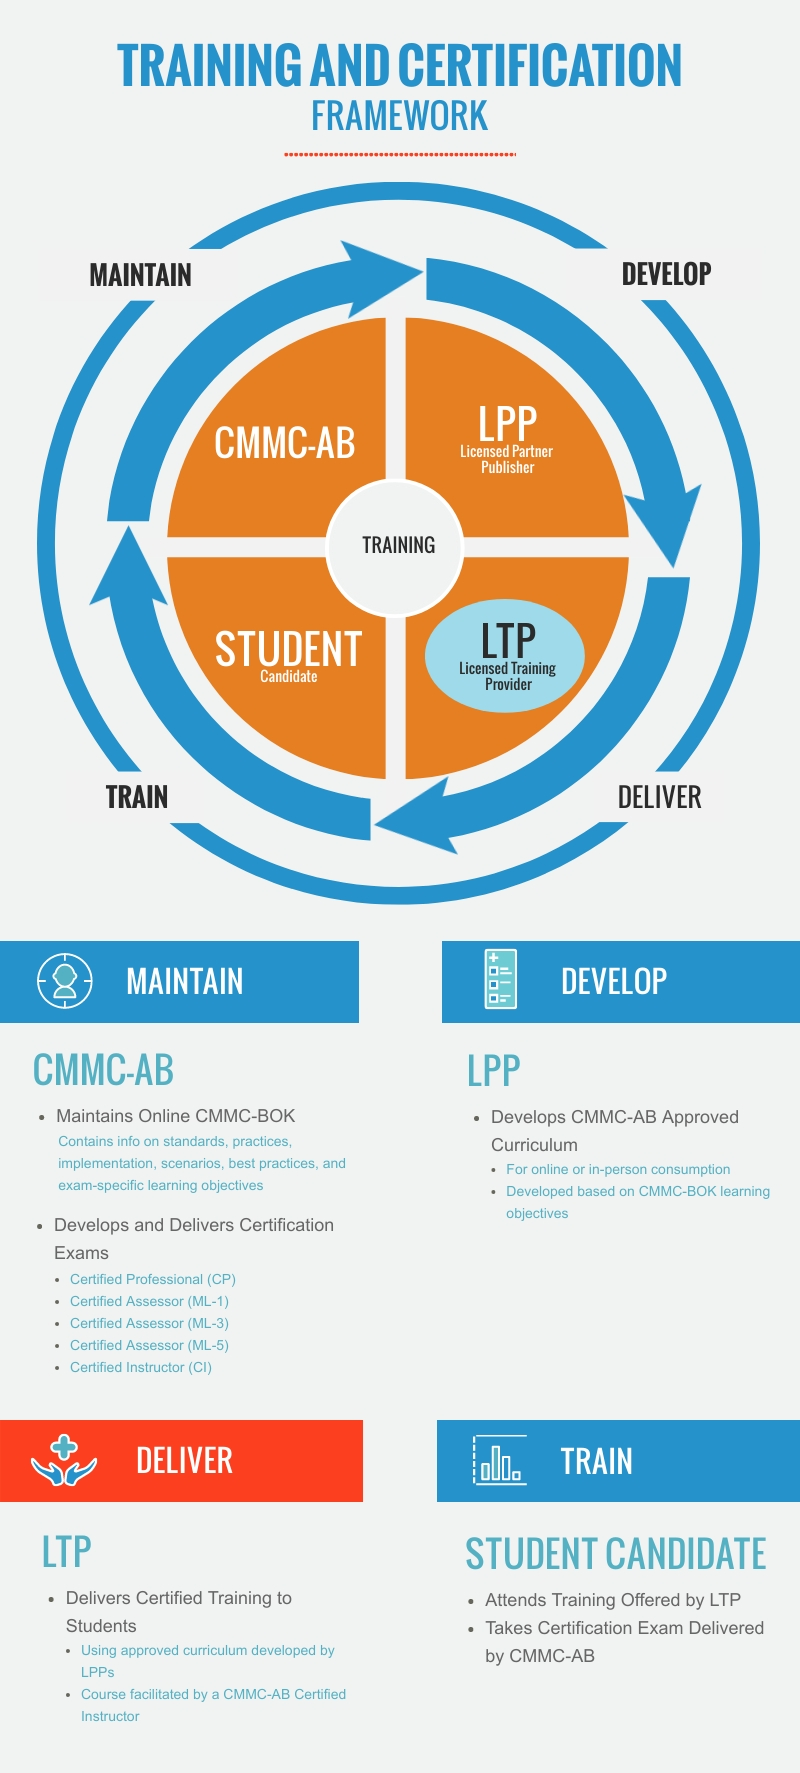 Infographic showing Training and Certification Framework